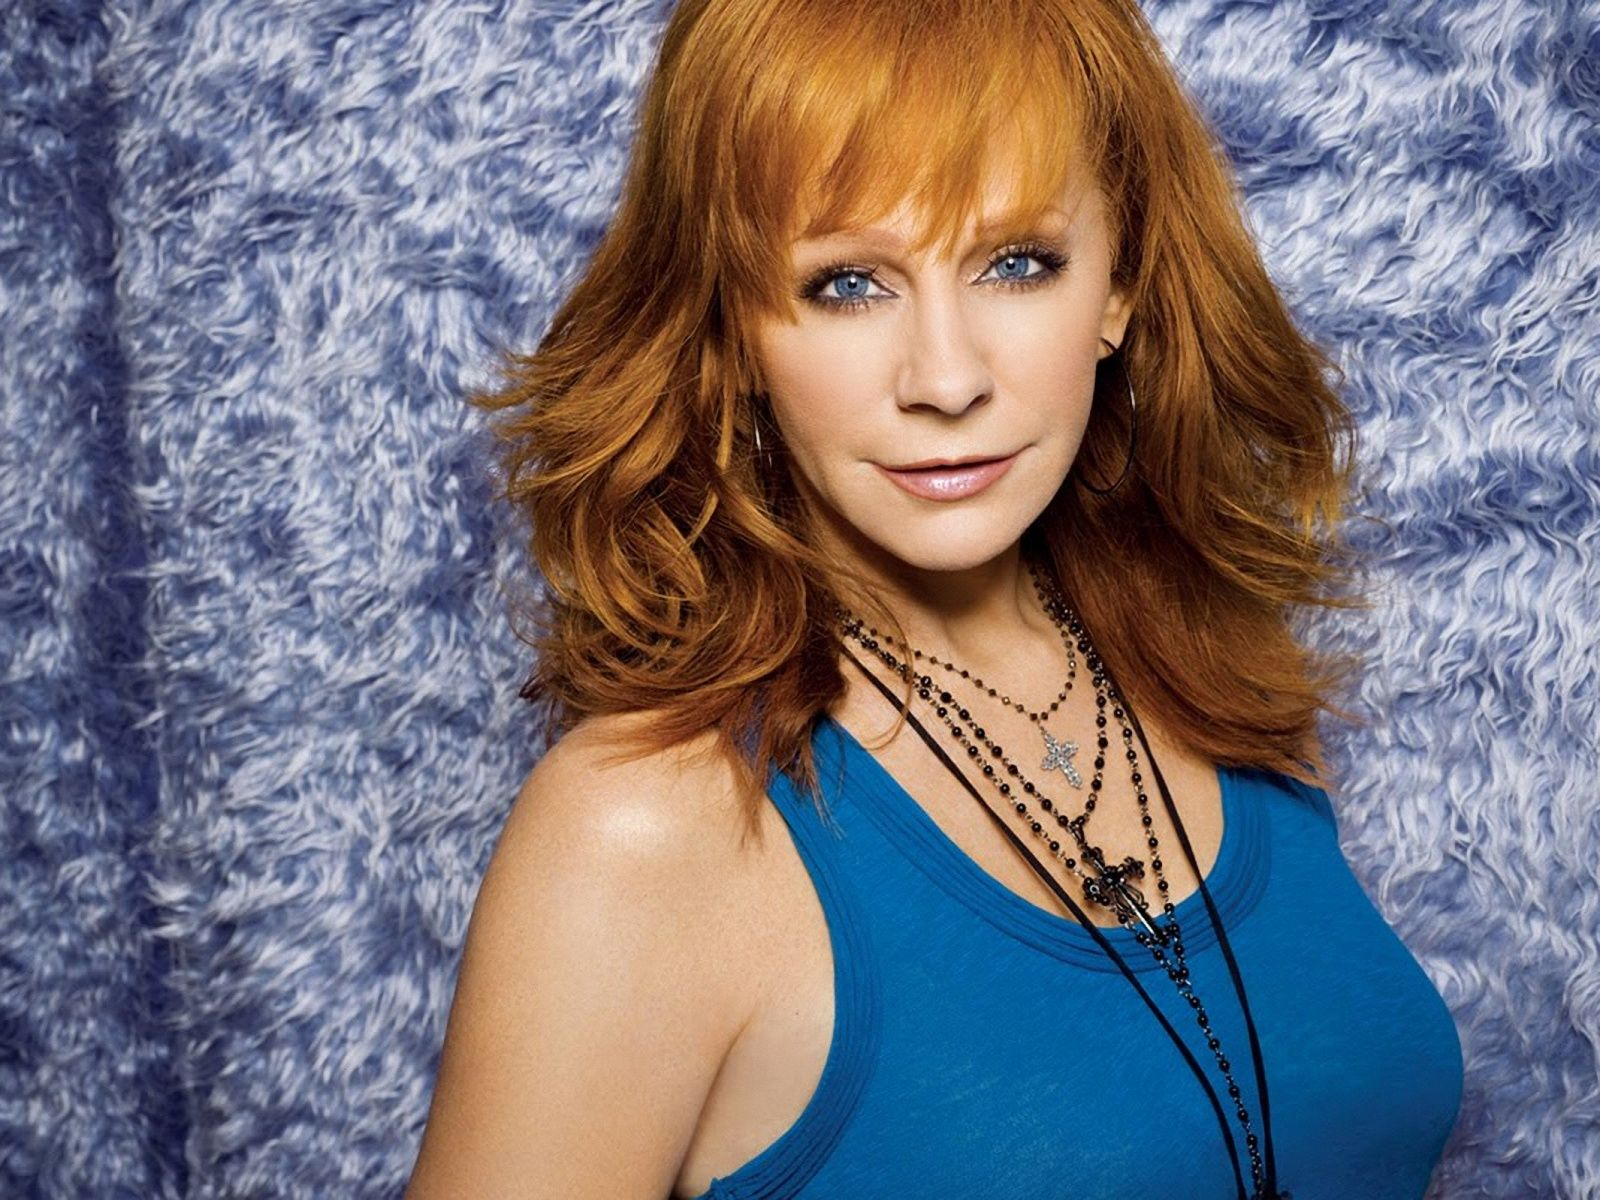 reba mcentire musicreba mcentire - back to god, reba mcentire - back to god перевод, reba mcentire - fancy, reba mcentire - fancy перевод, reba mcentire - back to god mp3, reba mcentire - forever love, reba mcentire what do you say, reba mcentire silent night, reba mcentire somebody, reba mcentire fancy album, reba mcentire music, reba mcentire wiki, reba mcentire myself without you, reba mcentire height weight, reba mcentire image, reba mcentire up on the housetop, reba mcentire - consider me gone, reba mcentire quotes, reba mcentire billboard, reba mcentire pronunciation